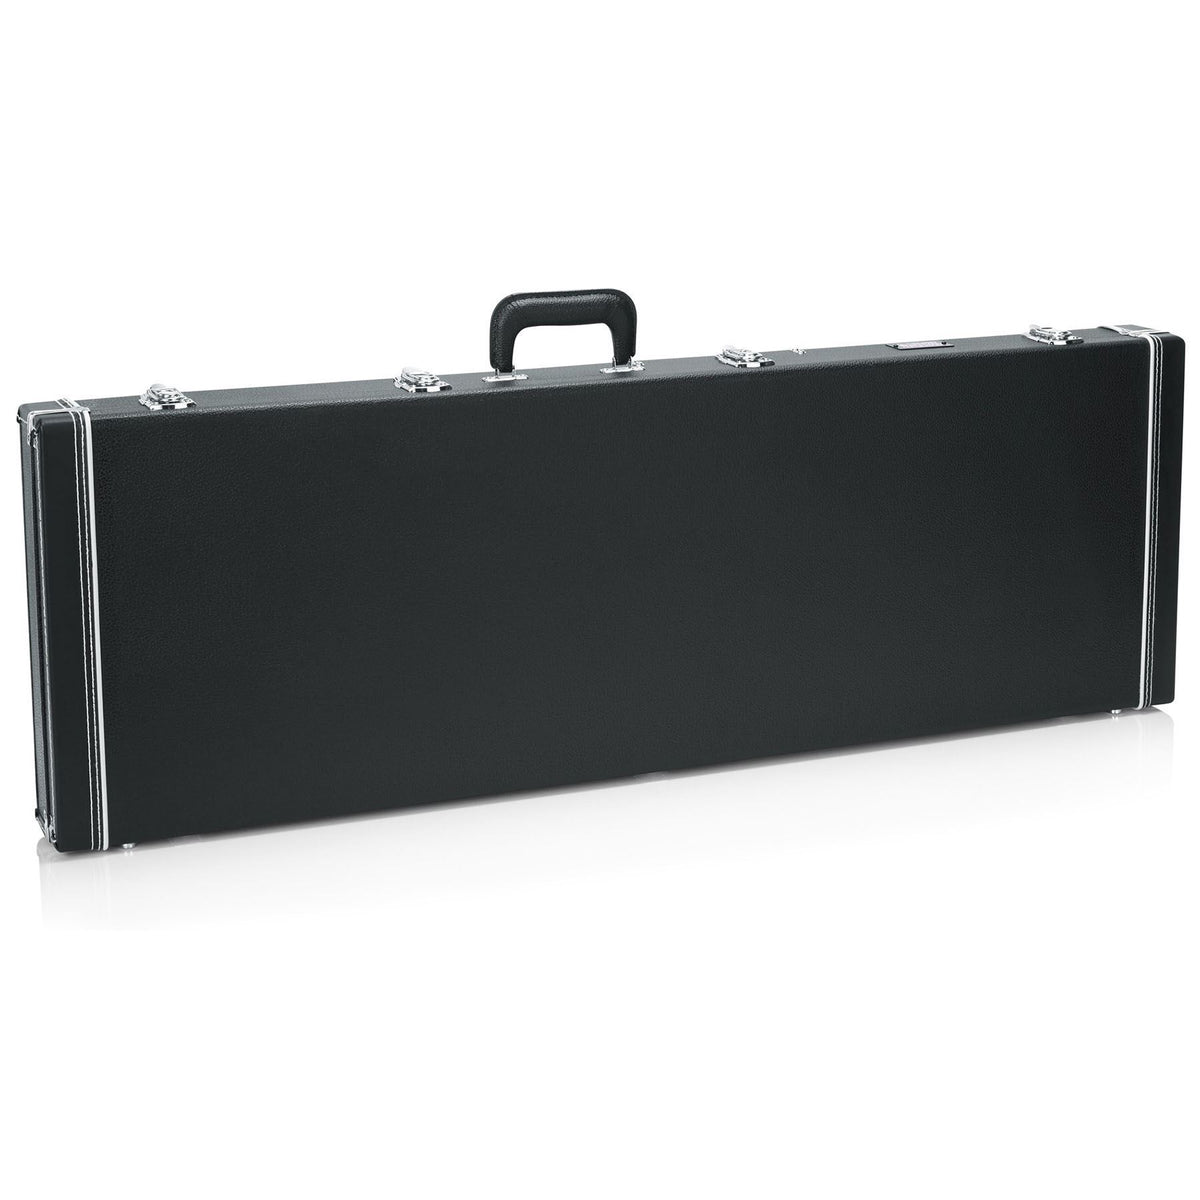 Gator Cases Deluxe Wood Case for Fender Victor Bailey Fretless Jazz Bass Guitars